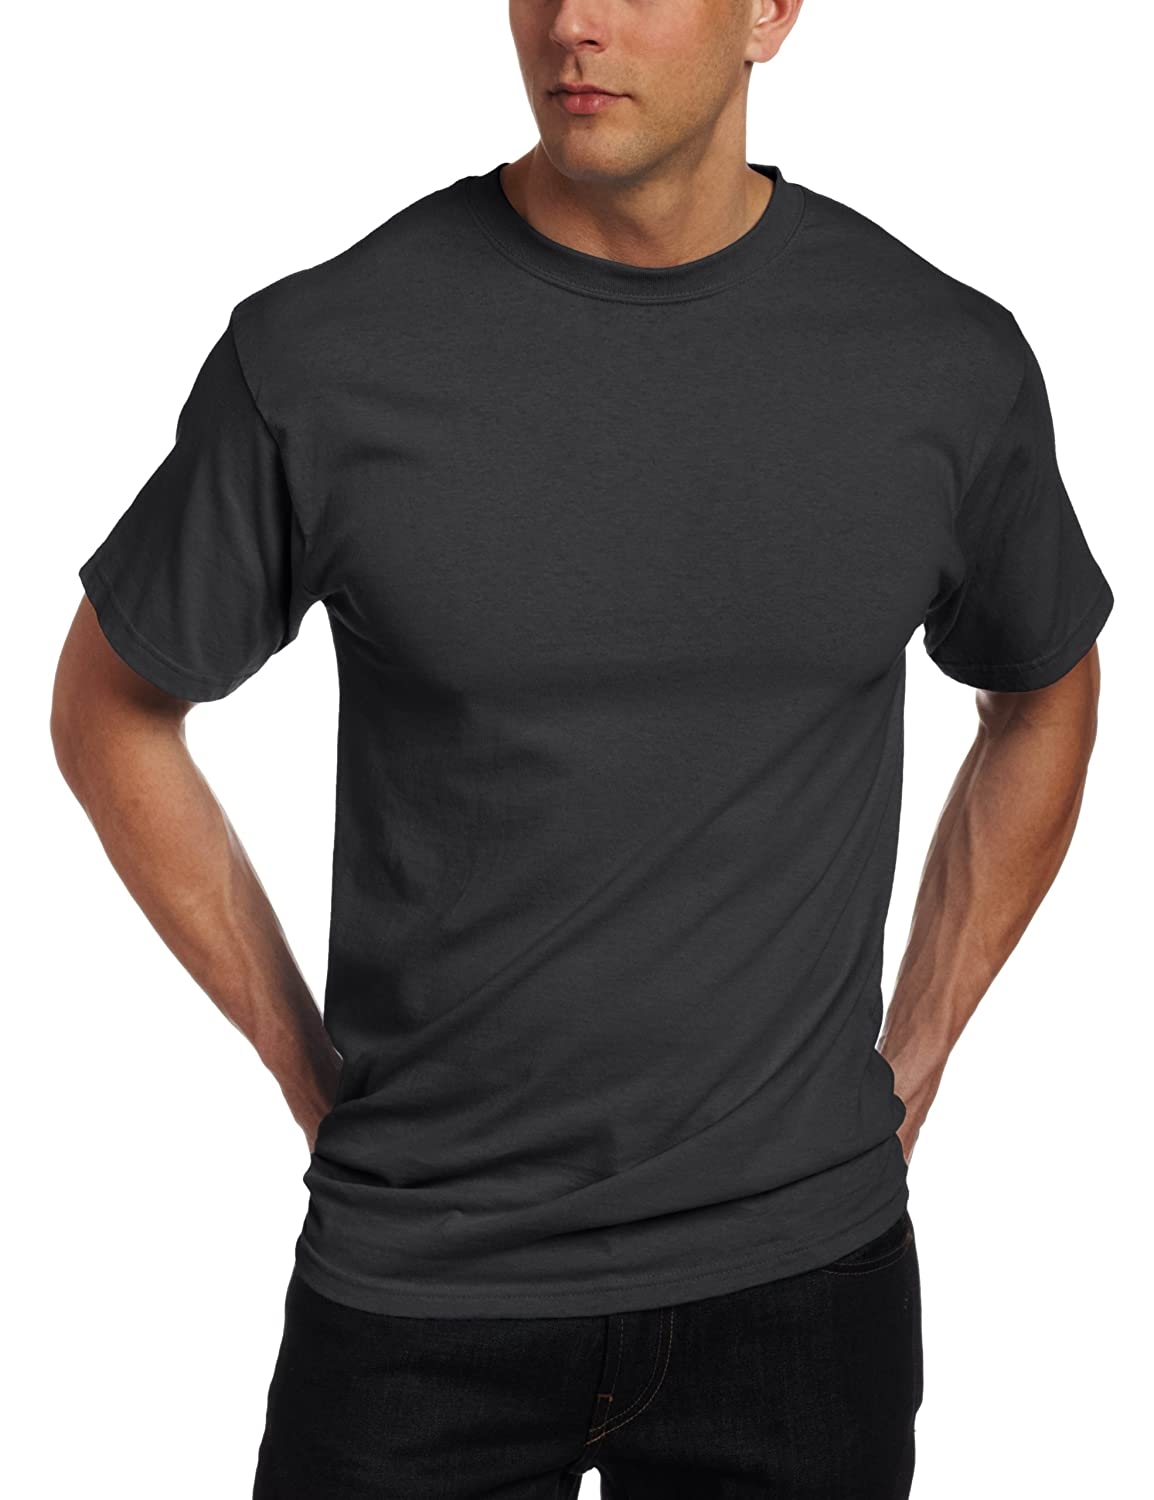 851cc2087 Amazon.com: Soffe Men's Classic Cotton T-Shirt: Clothing